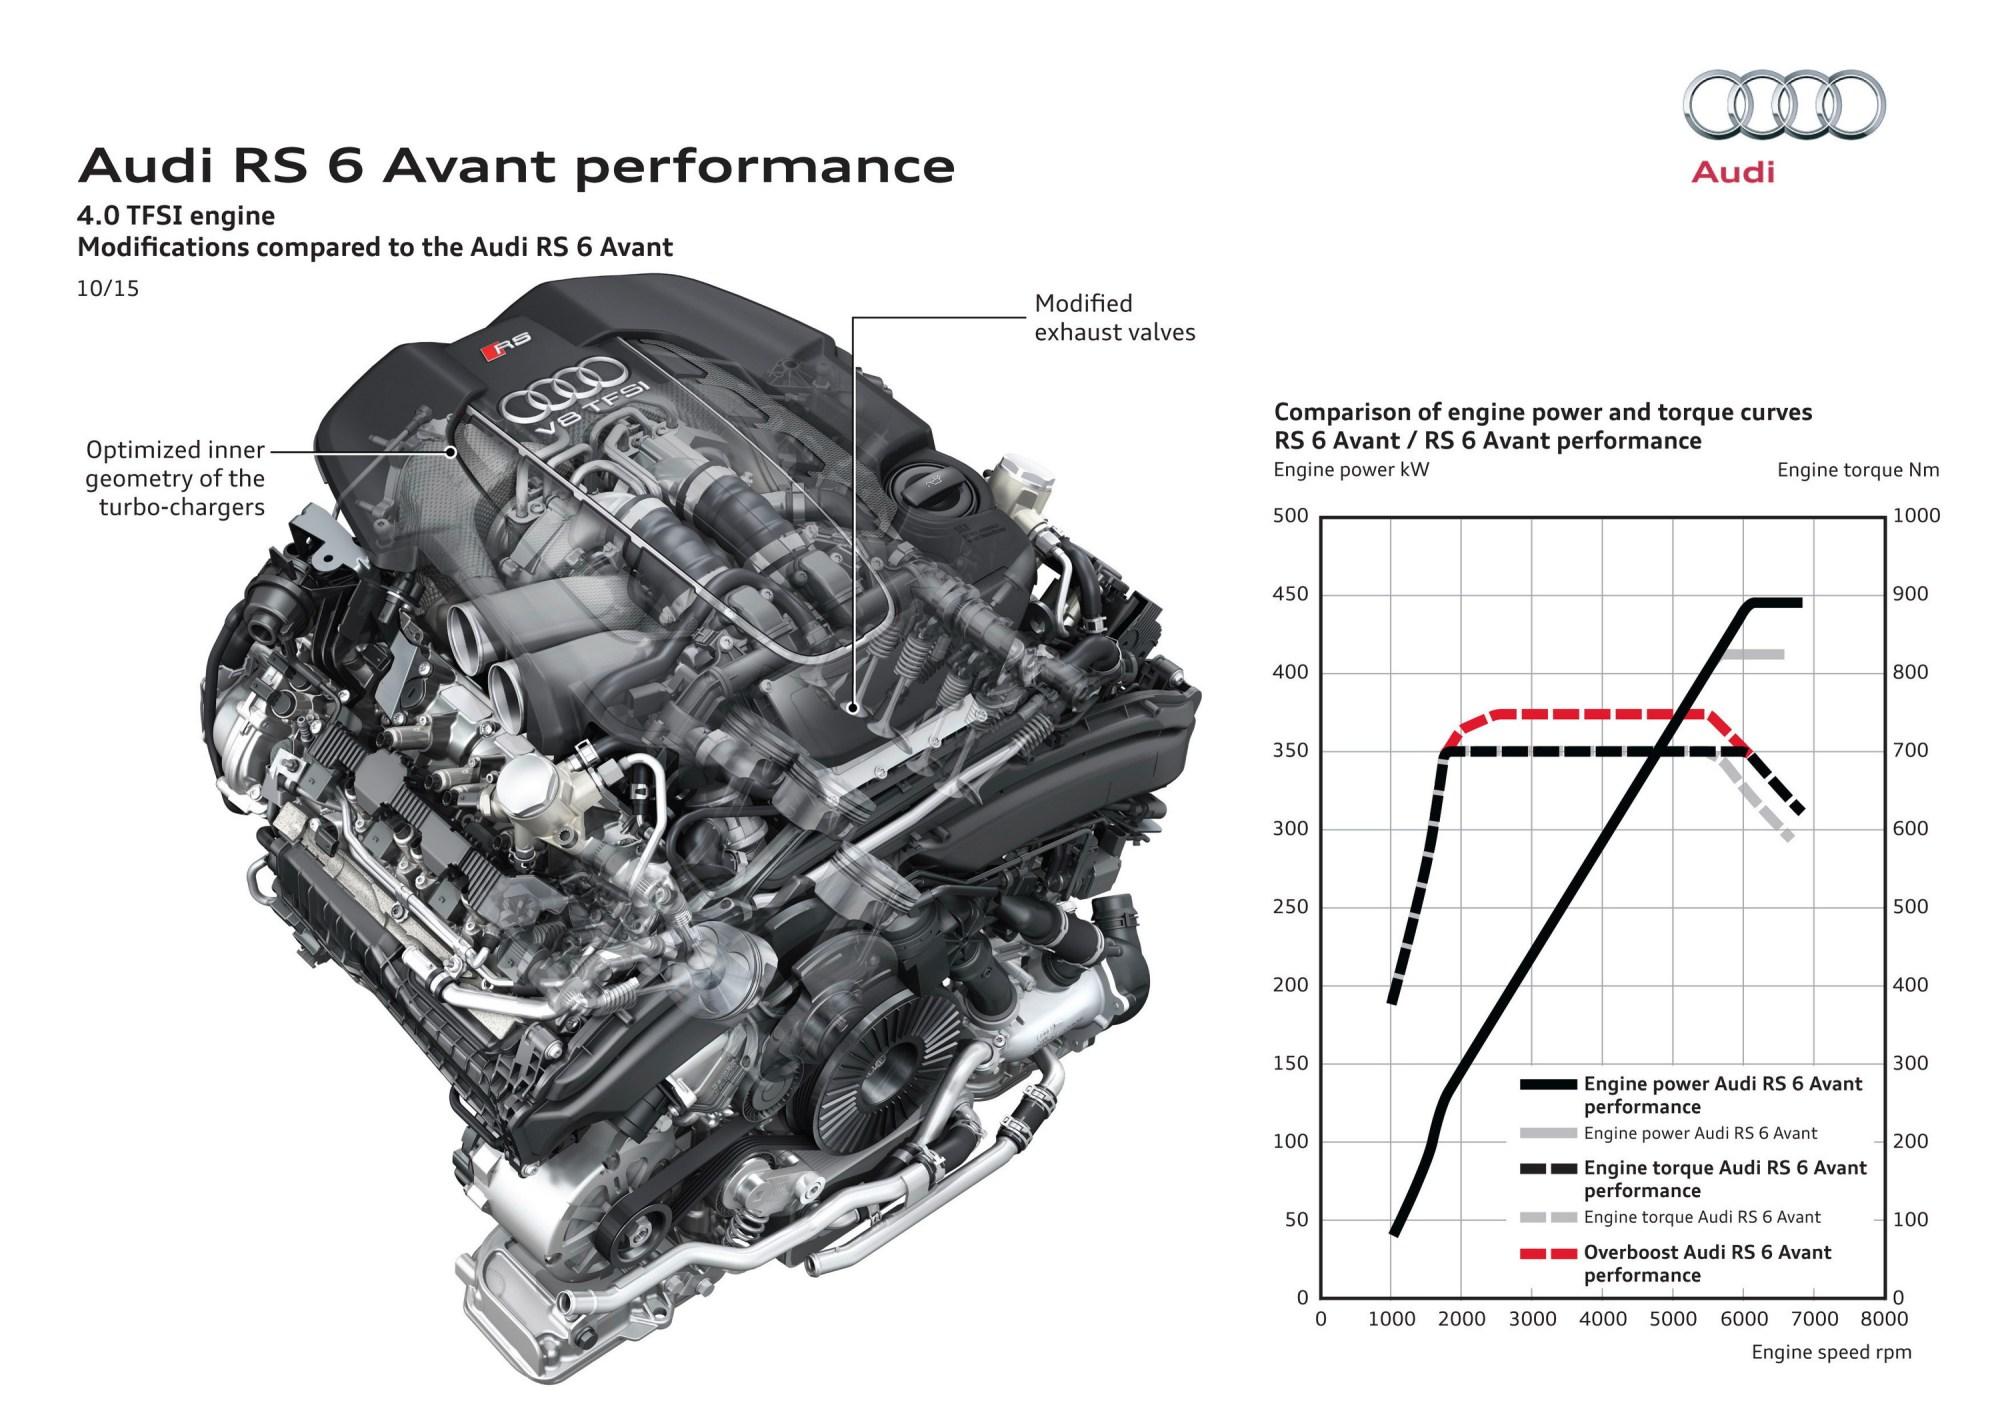 hight resolution of audi v8 engine diagram wiring diagram datasource audi rs6 avant engine diagram wiring diagram today audi